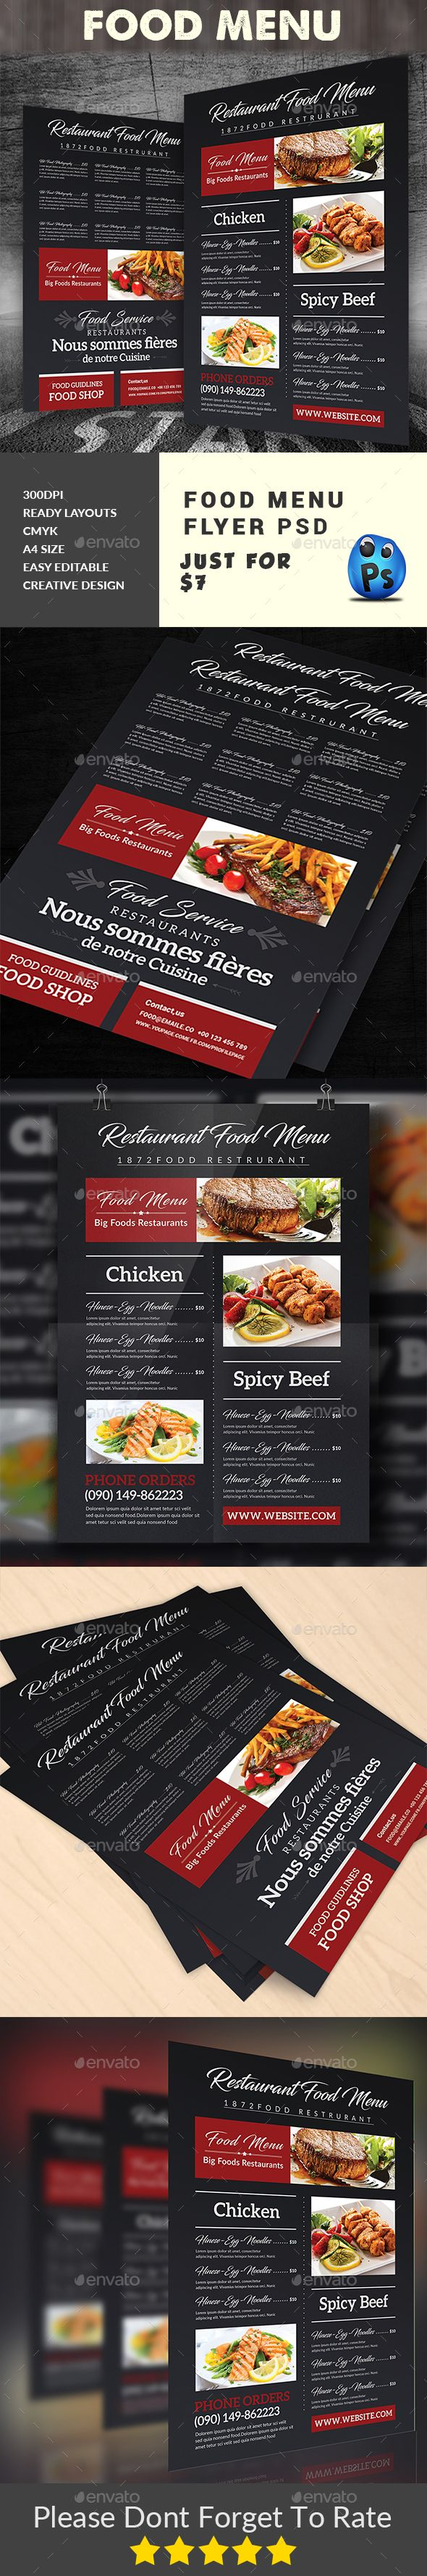 Best Best Food Menu Templates Images On   Food Menu